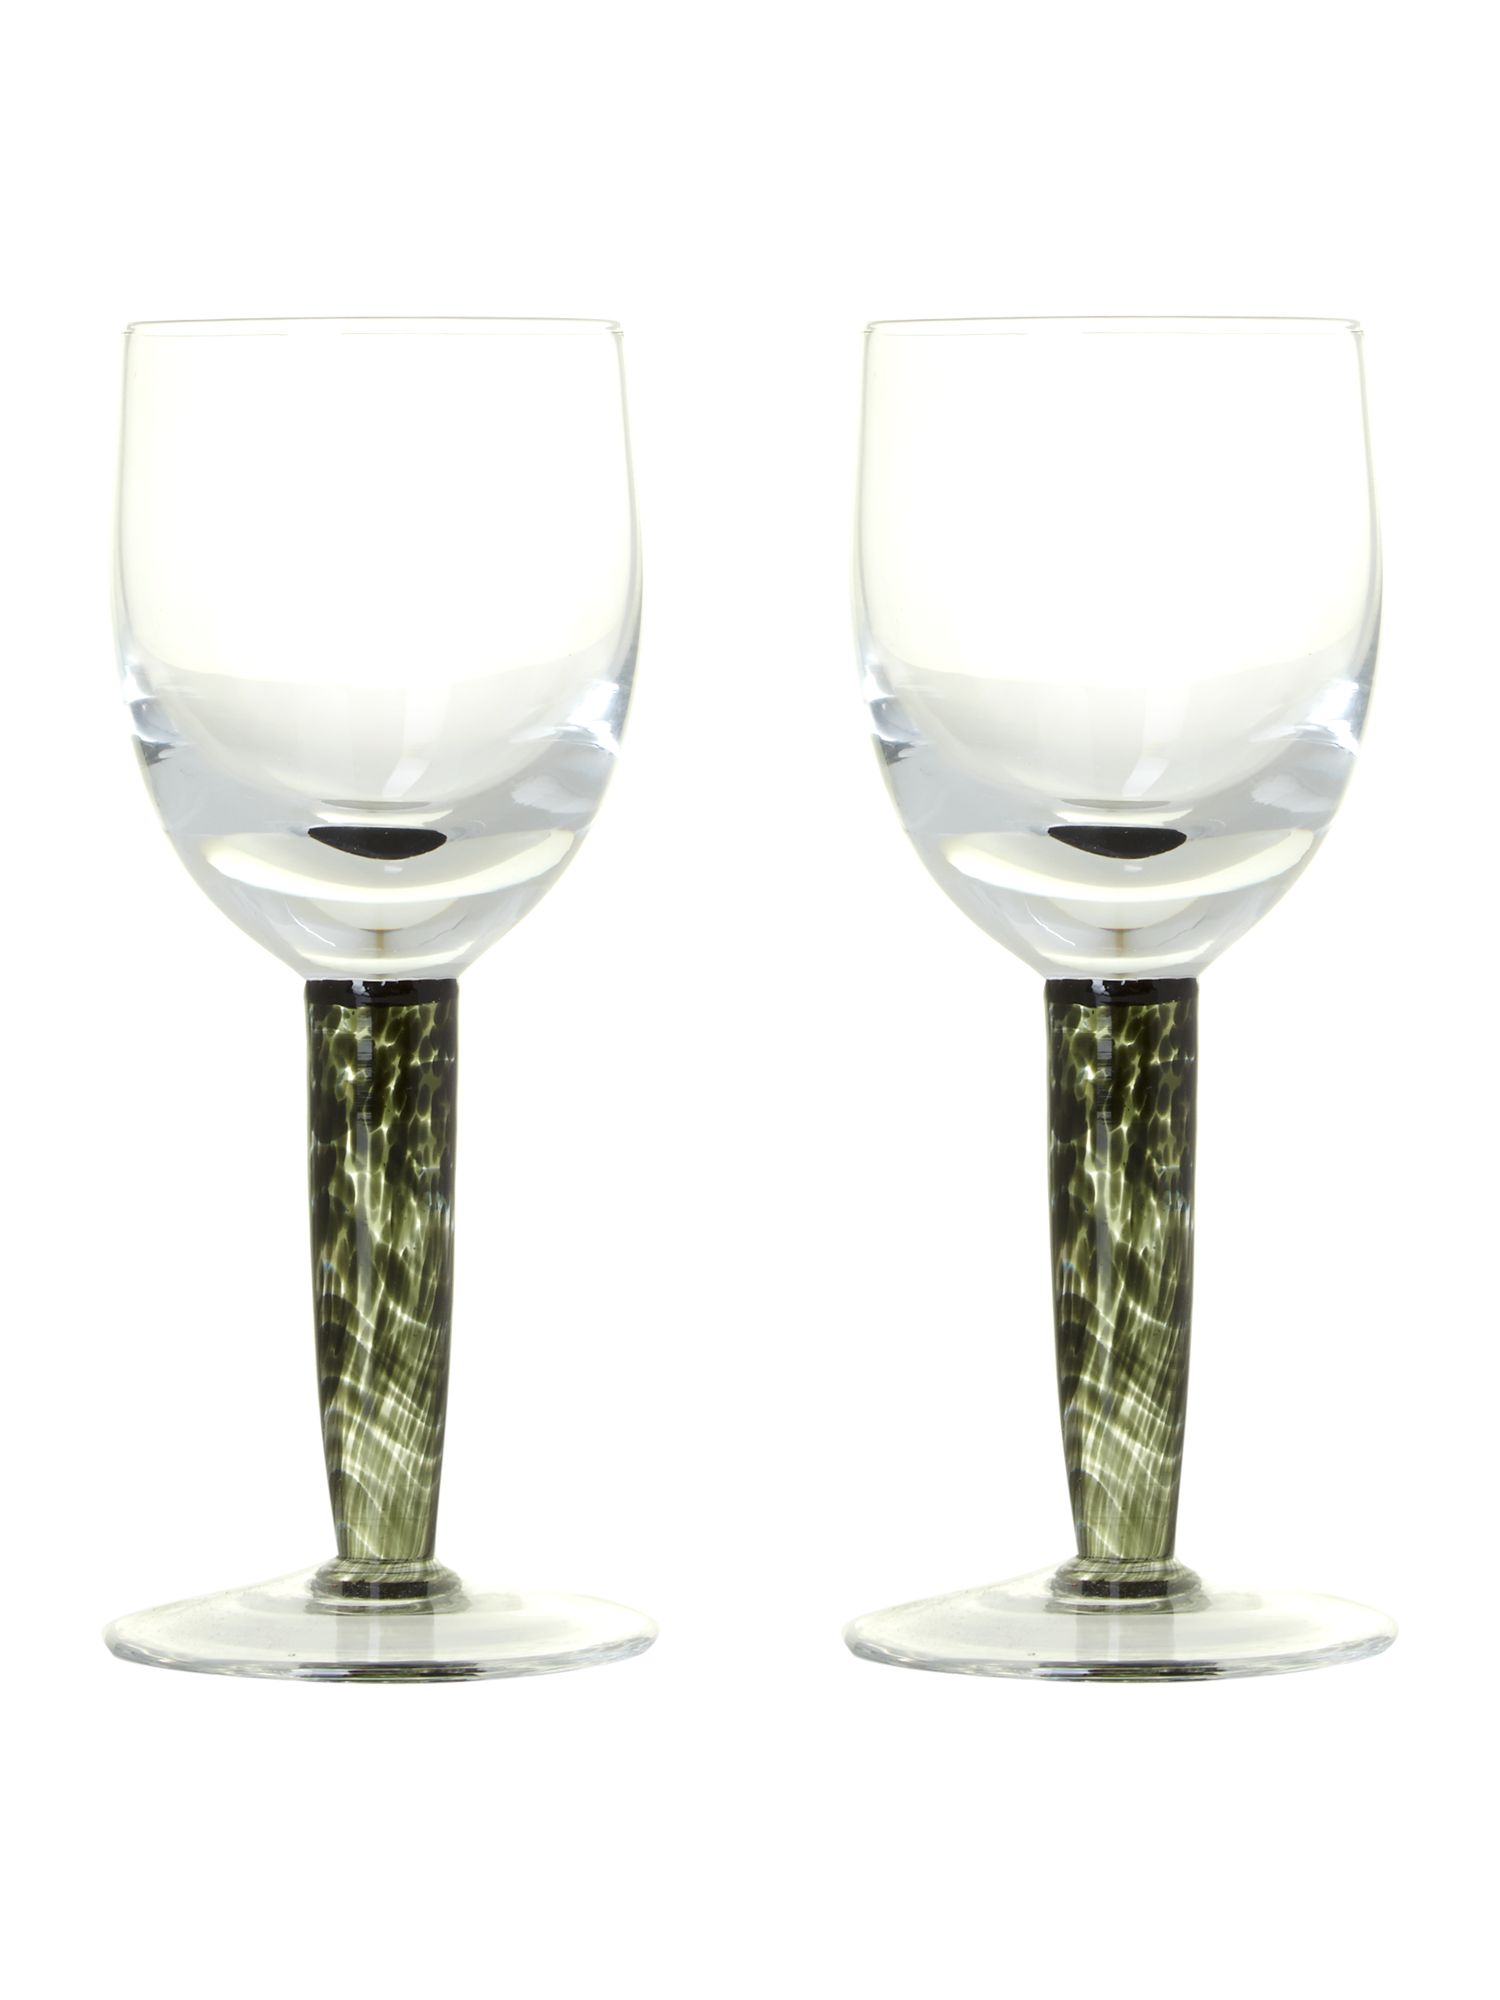 Jet white wine glasses (pack of 2)